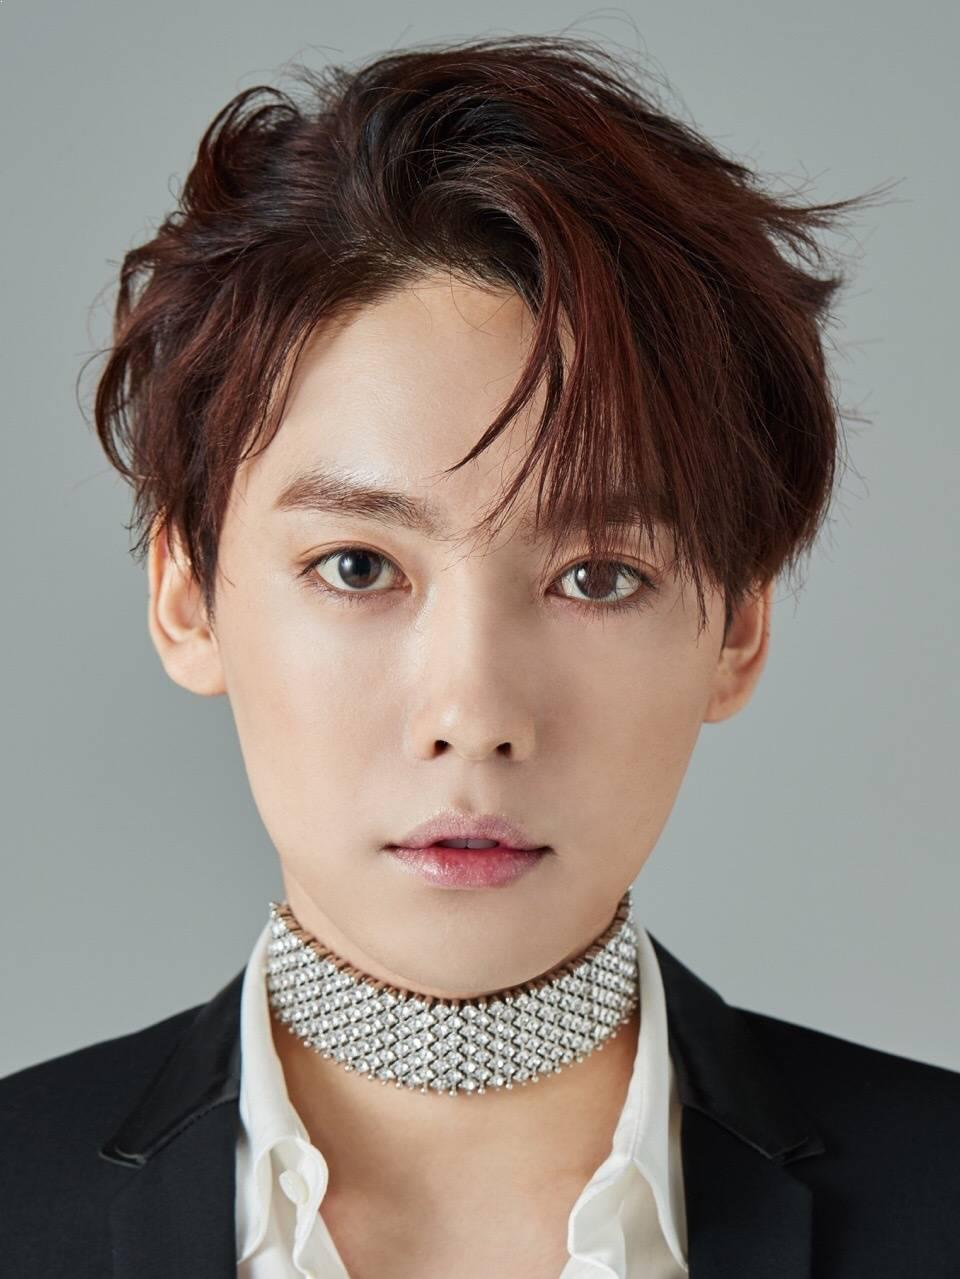 WINNER JinWoo, WINNER JinWoo Profile, KPop Idol Eyebrow